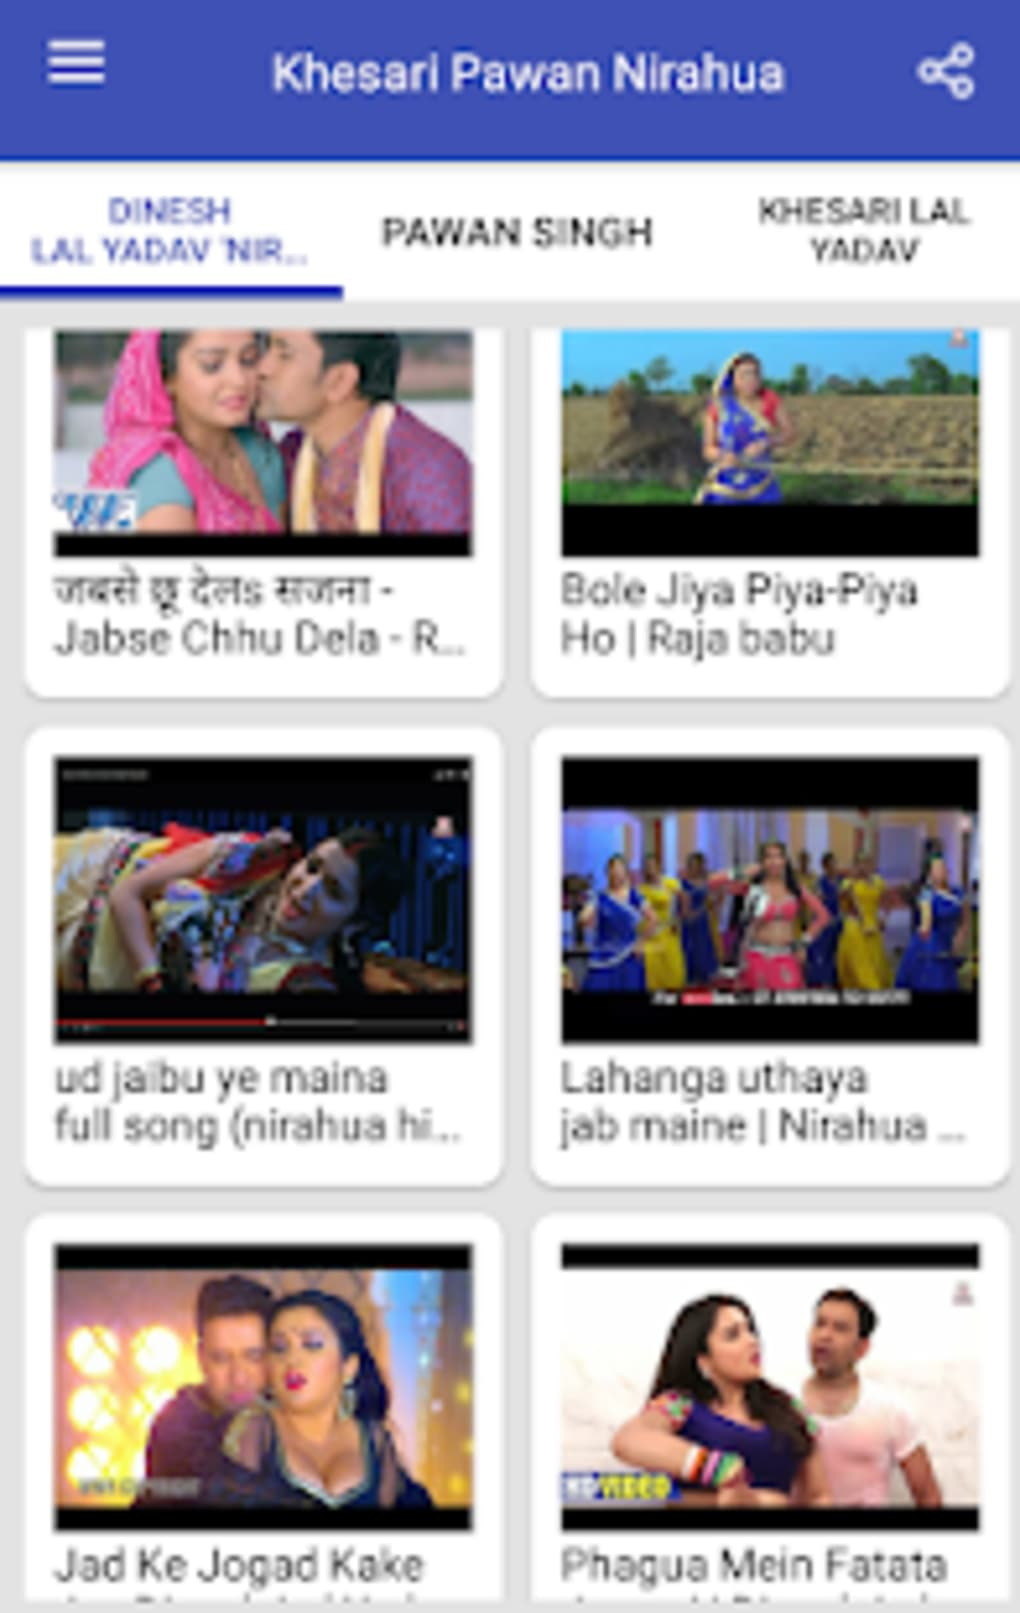 Bhojpuri Gana - Bhojpuri Video Songs for Android - Download